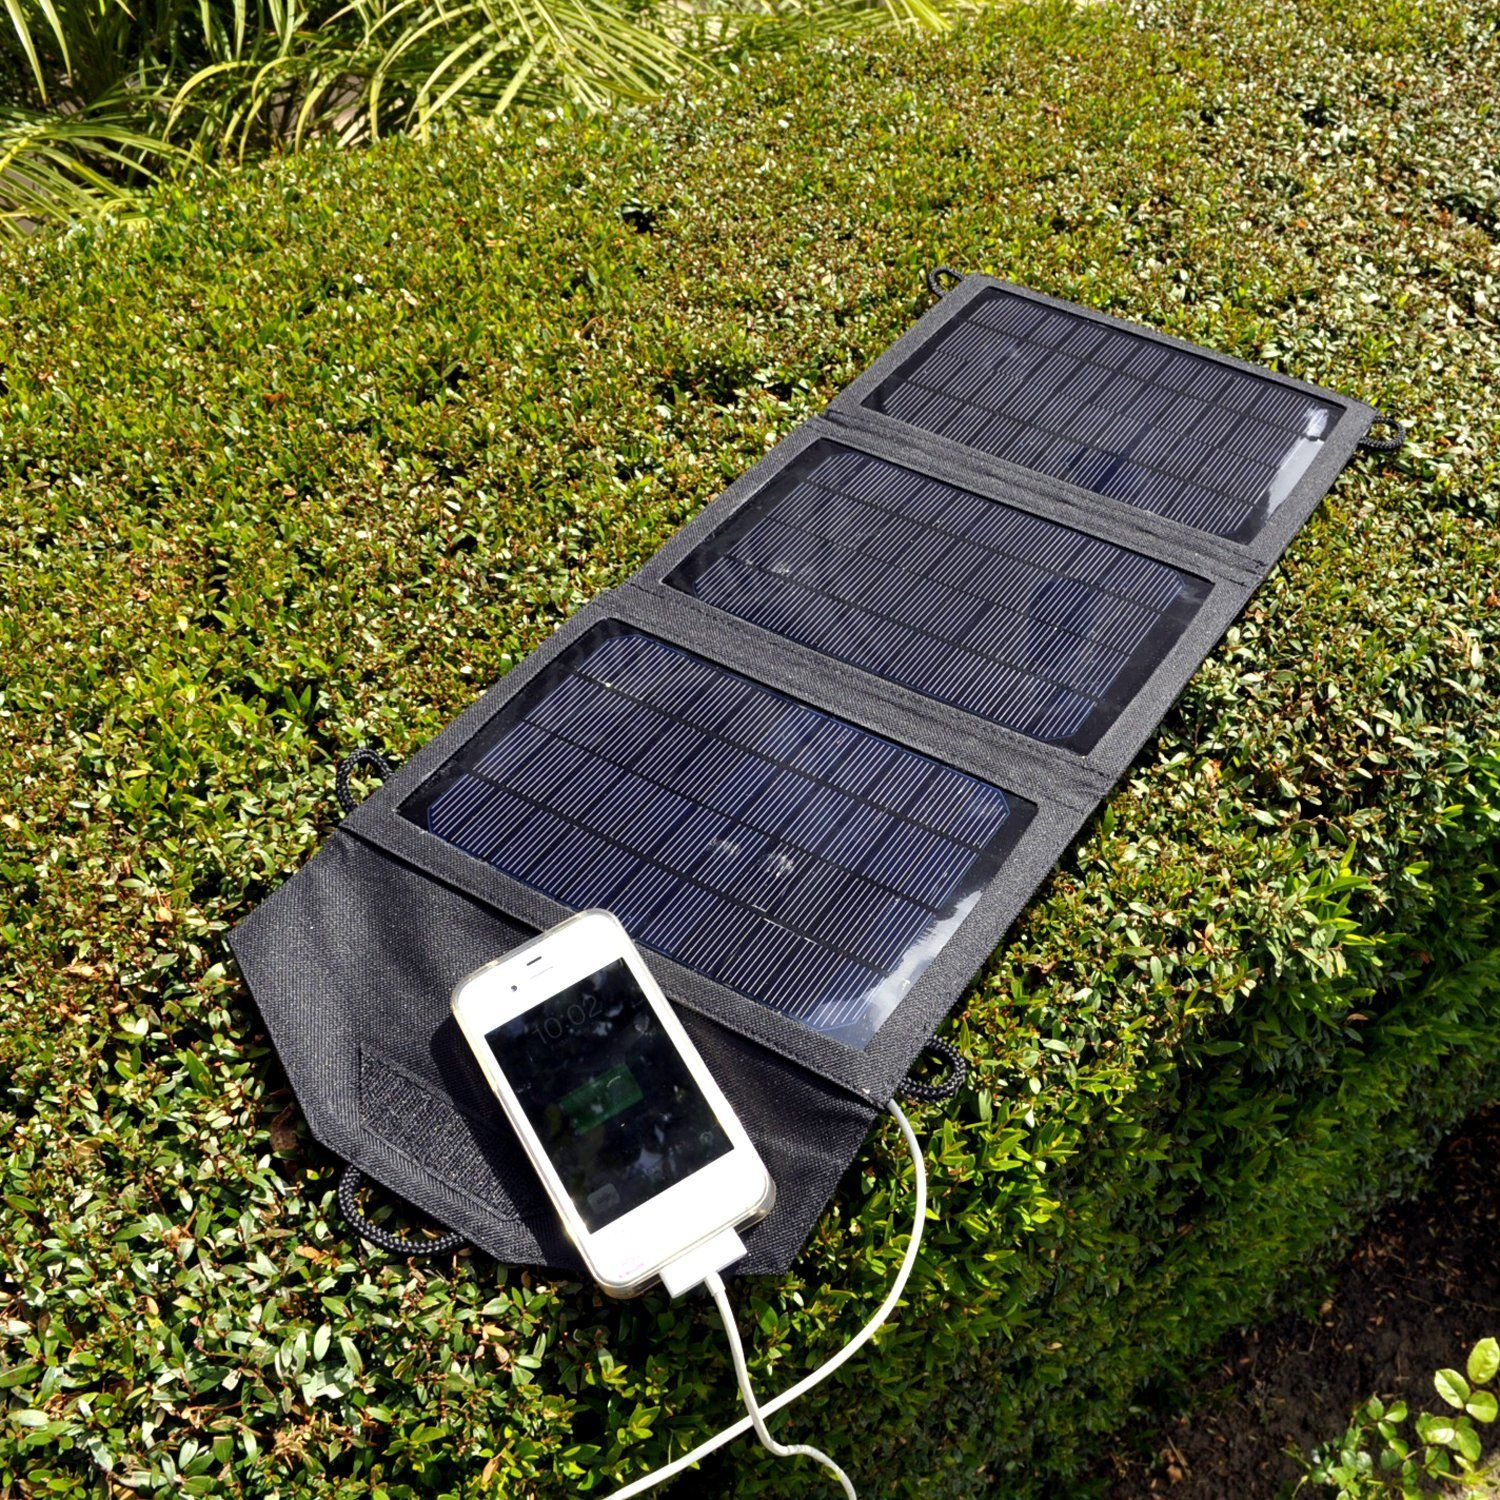 Instapark 10 Watt Solar Panel Portable Solar Charger With Dual Usb Ports For Iphone Ipad All Other Usb Compatible Devices Portable Solar Panels Solar Charger Portable Solar Panel Charger